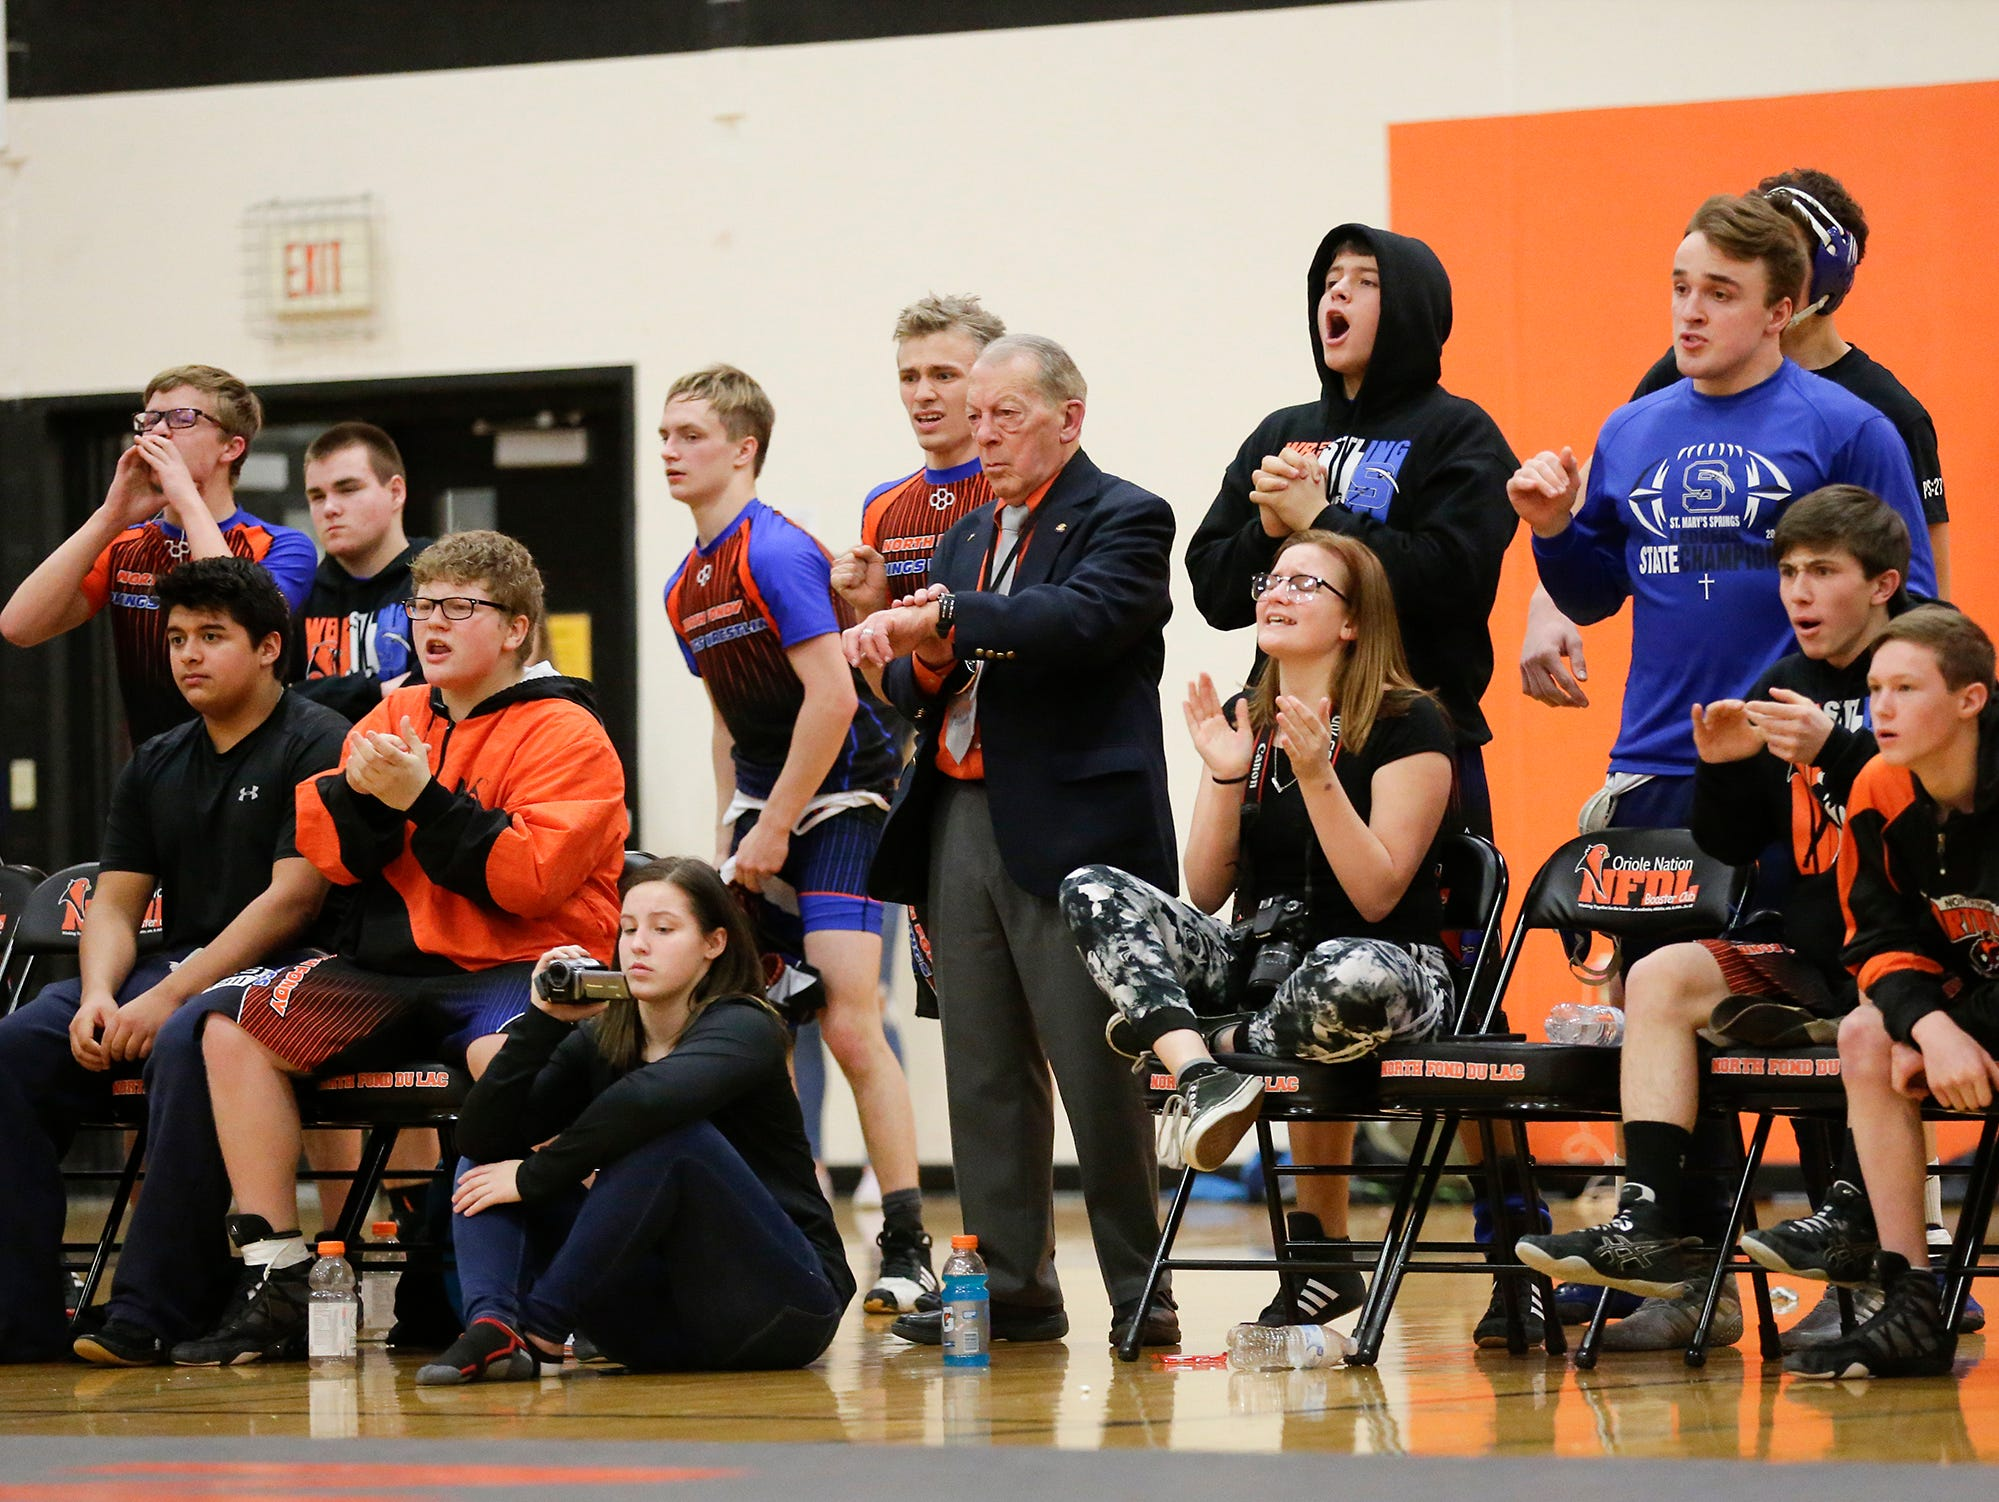 St. Mary's Springs Academy/North Fond du Lac High School wrestling coaches and players cheer on Carson Reitz as he wrestles against Lomira High School's Hunter Feucht during their 170 pound weight class match in North Fond du Lac. Reitz won the match by a pin and Springs/North Fond du Lac won the meet 48-28. Doug Raflik/USA TODAY NETWORK-Wisconsin